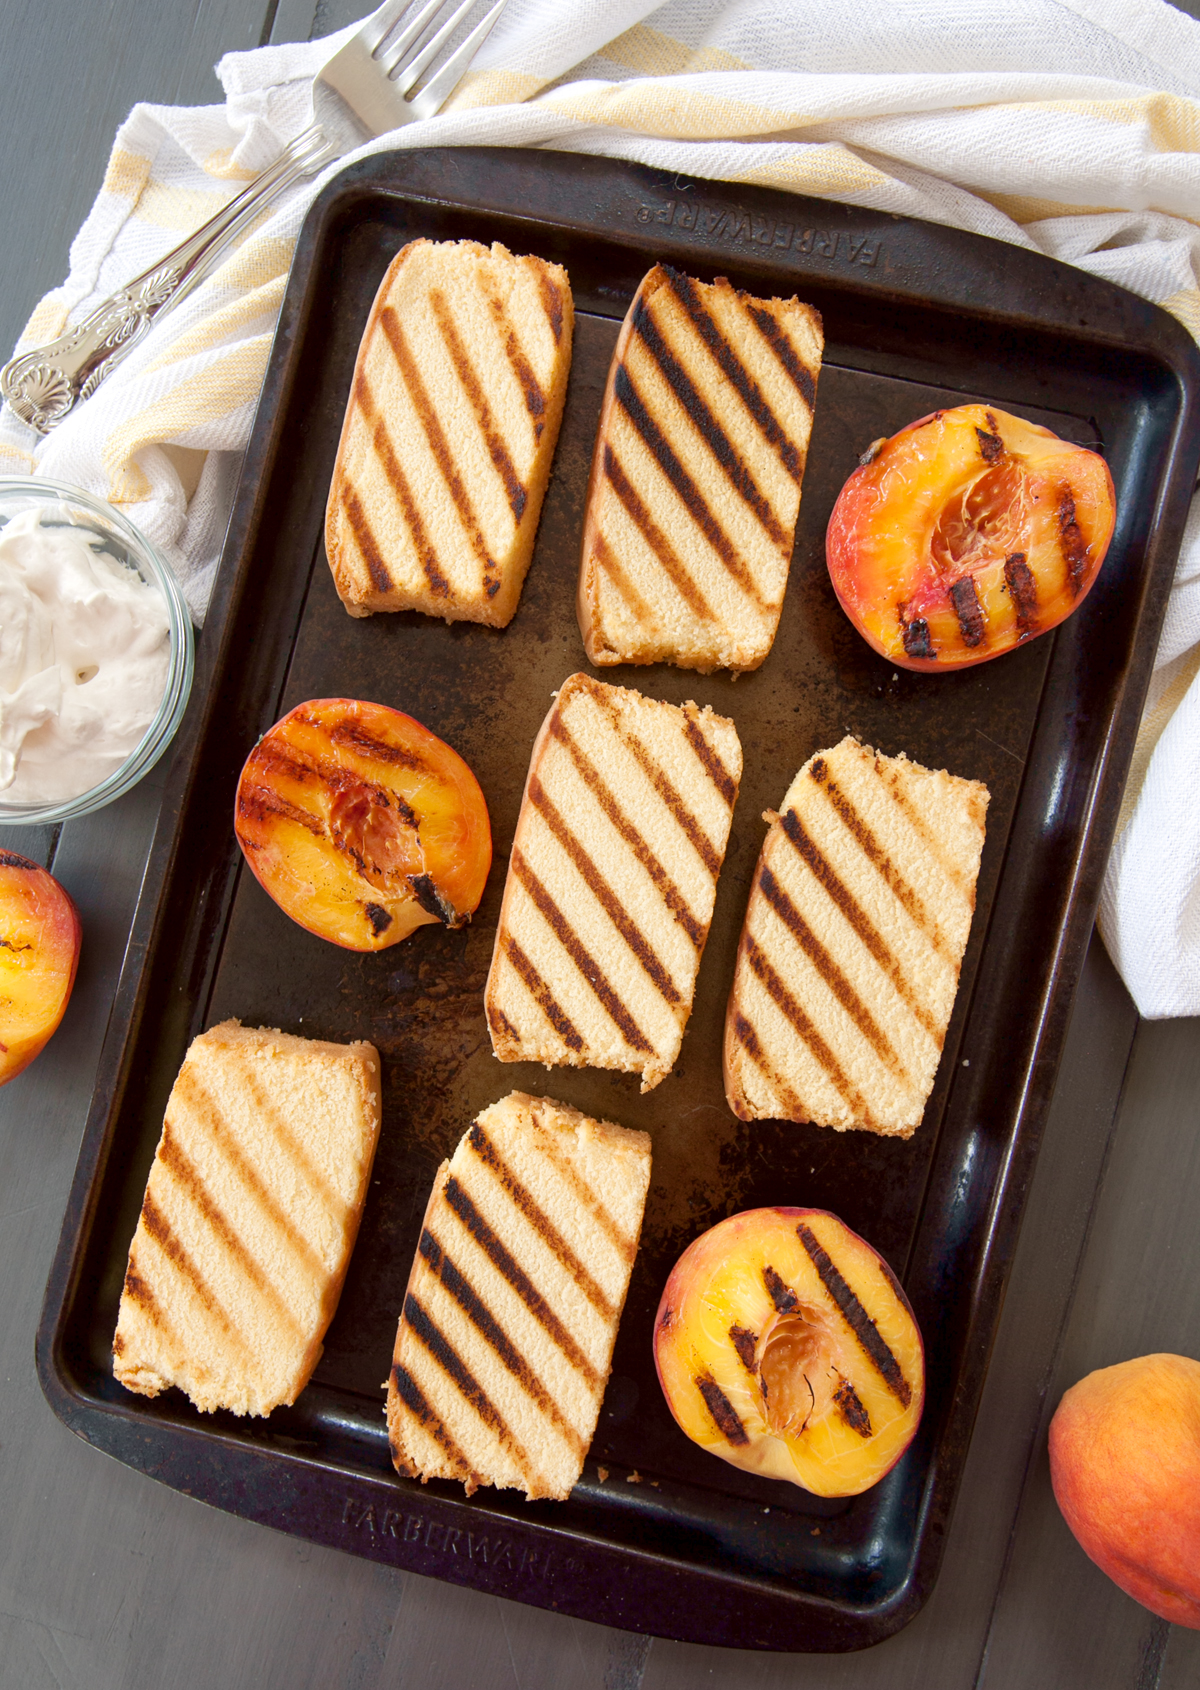 overhead photo of a baking tray full of slices of grilled pound cake and peaches